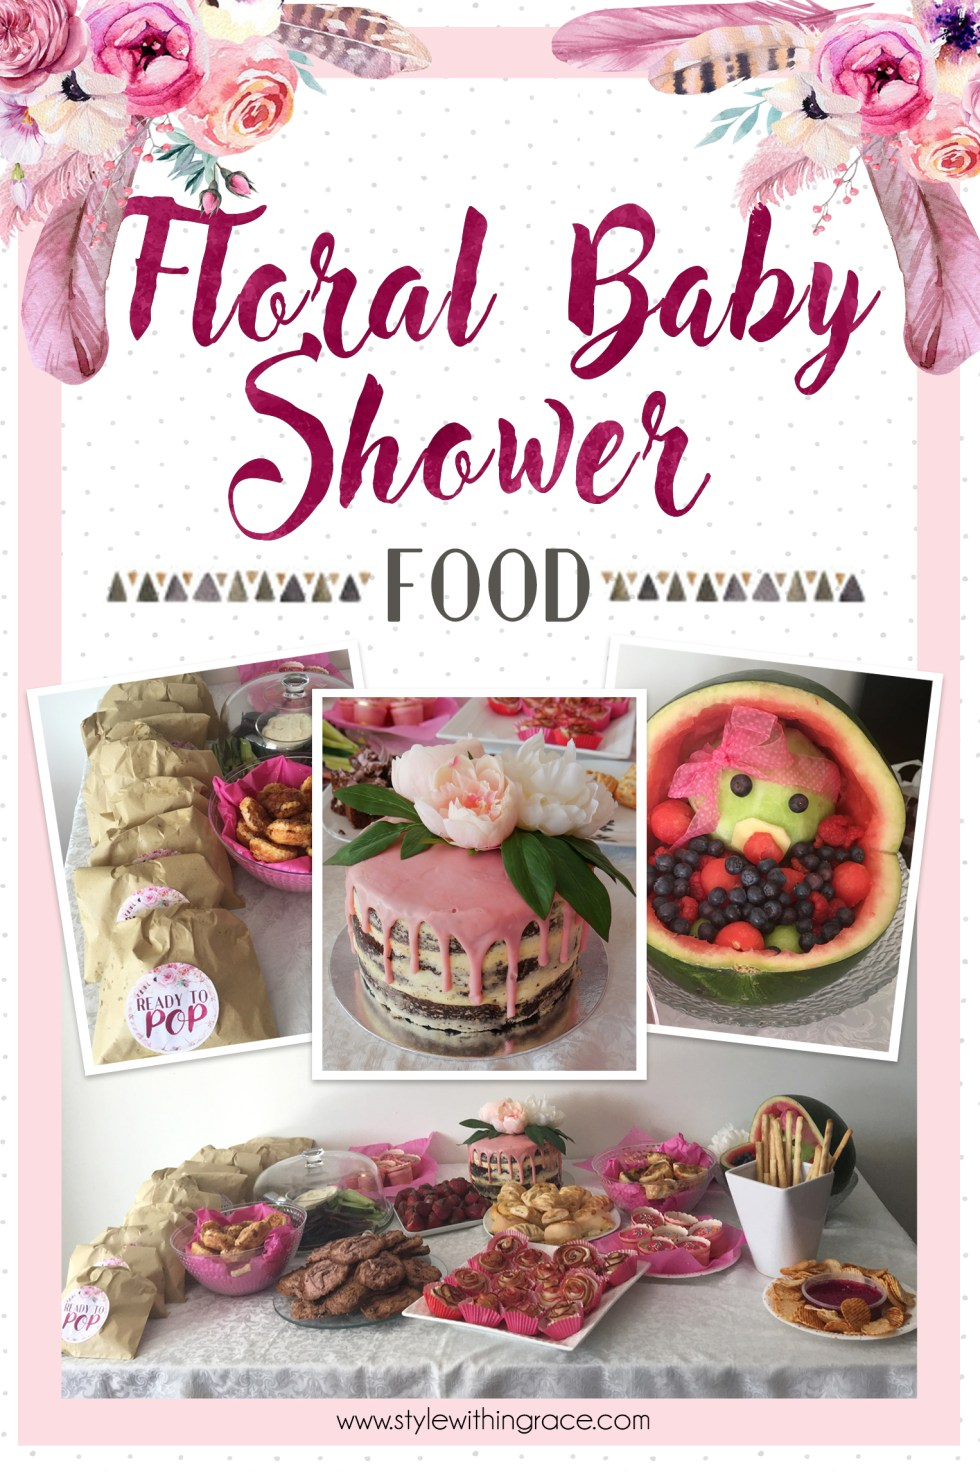 Food inspiration and recipes for a spring floral themed baby shower including free printable ready to pop labels!